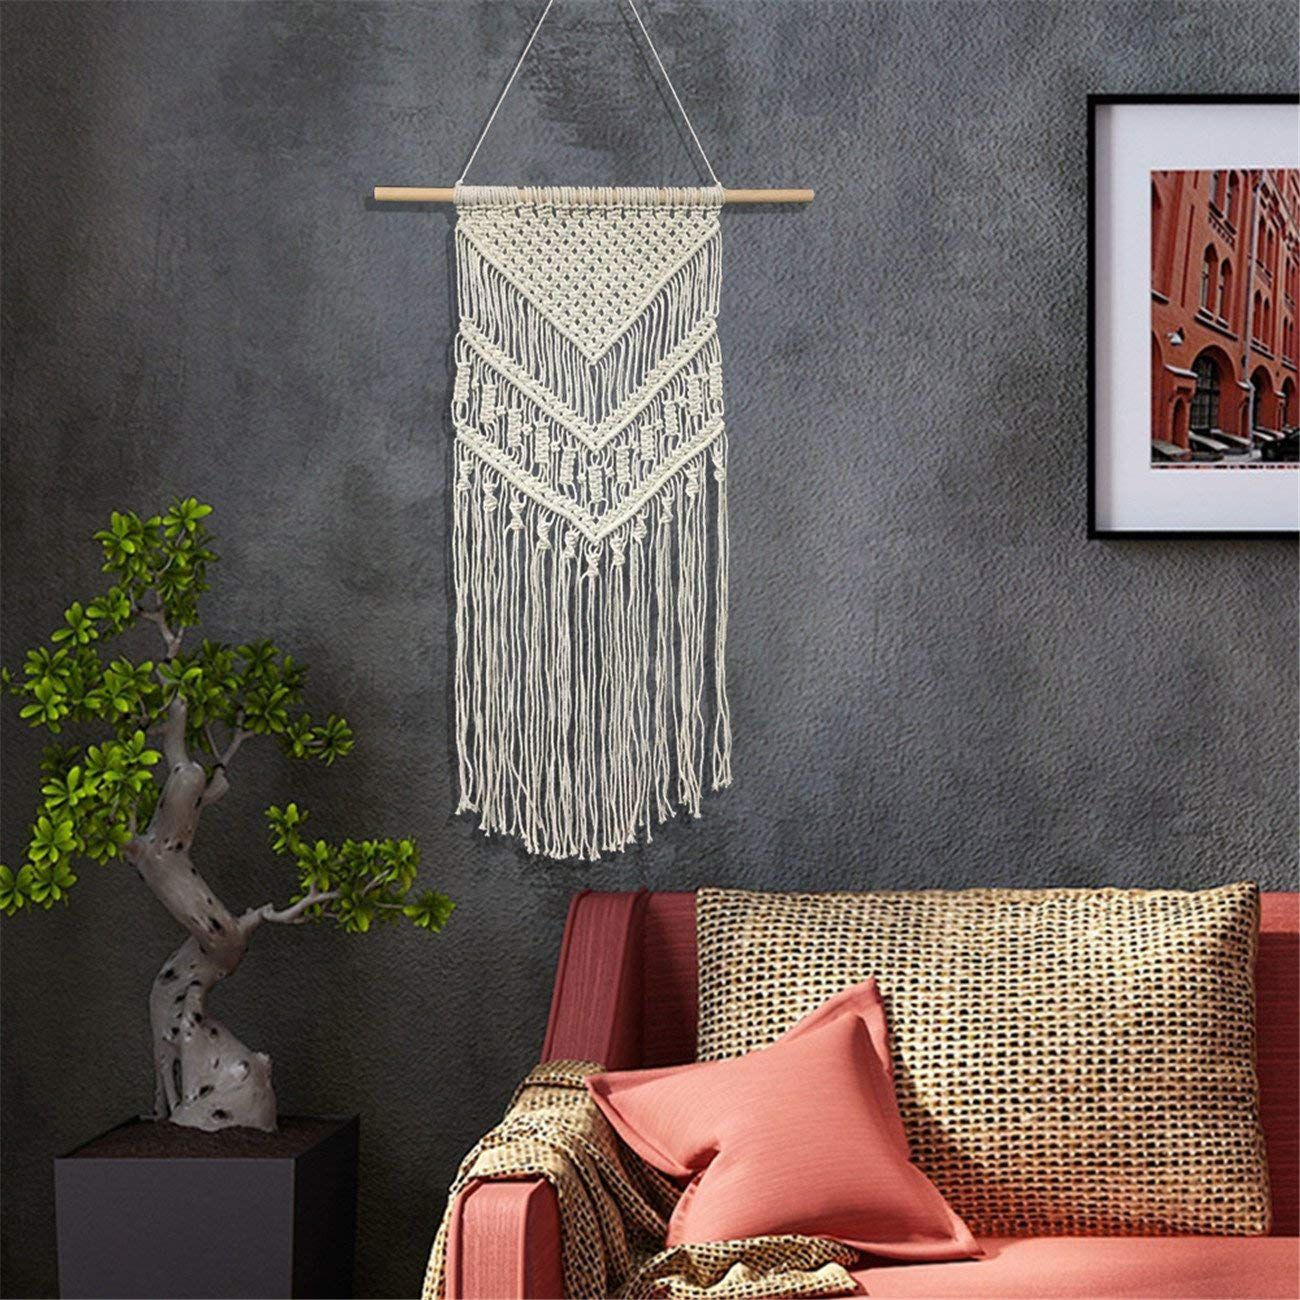 Home Design Ideas Decorating Gardening: The 7 Best Macrame Wall Hangings Of 2020